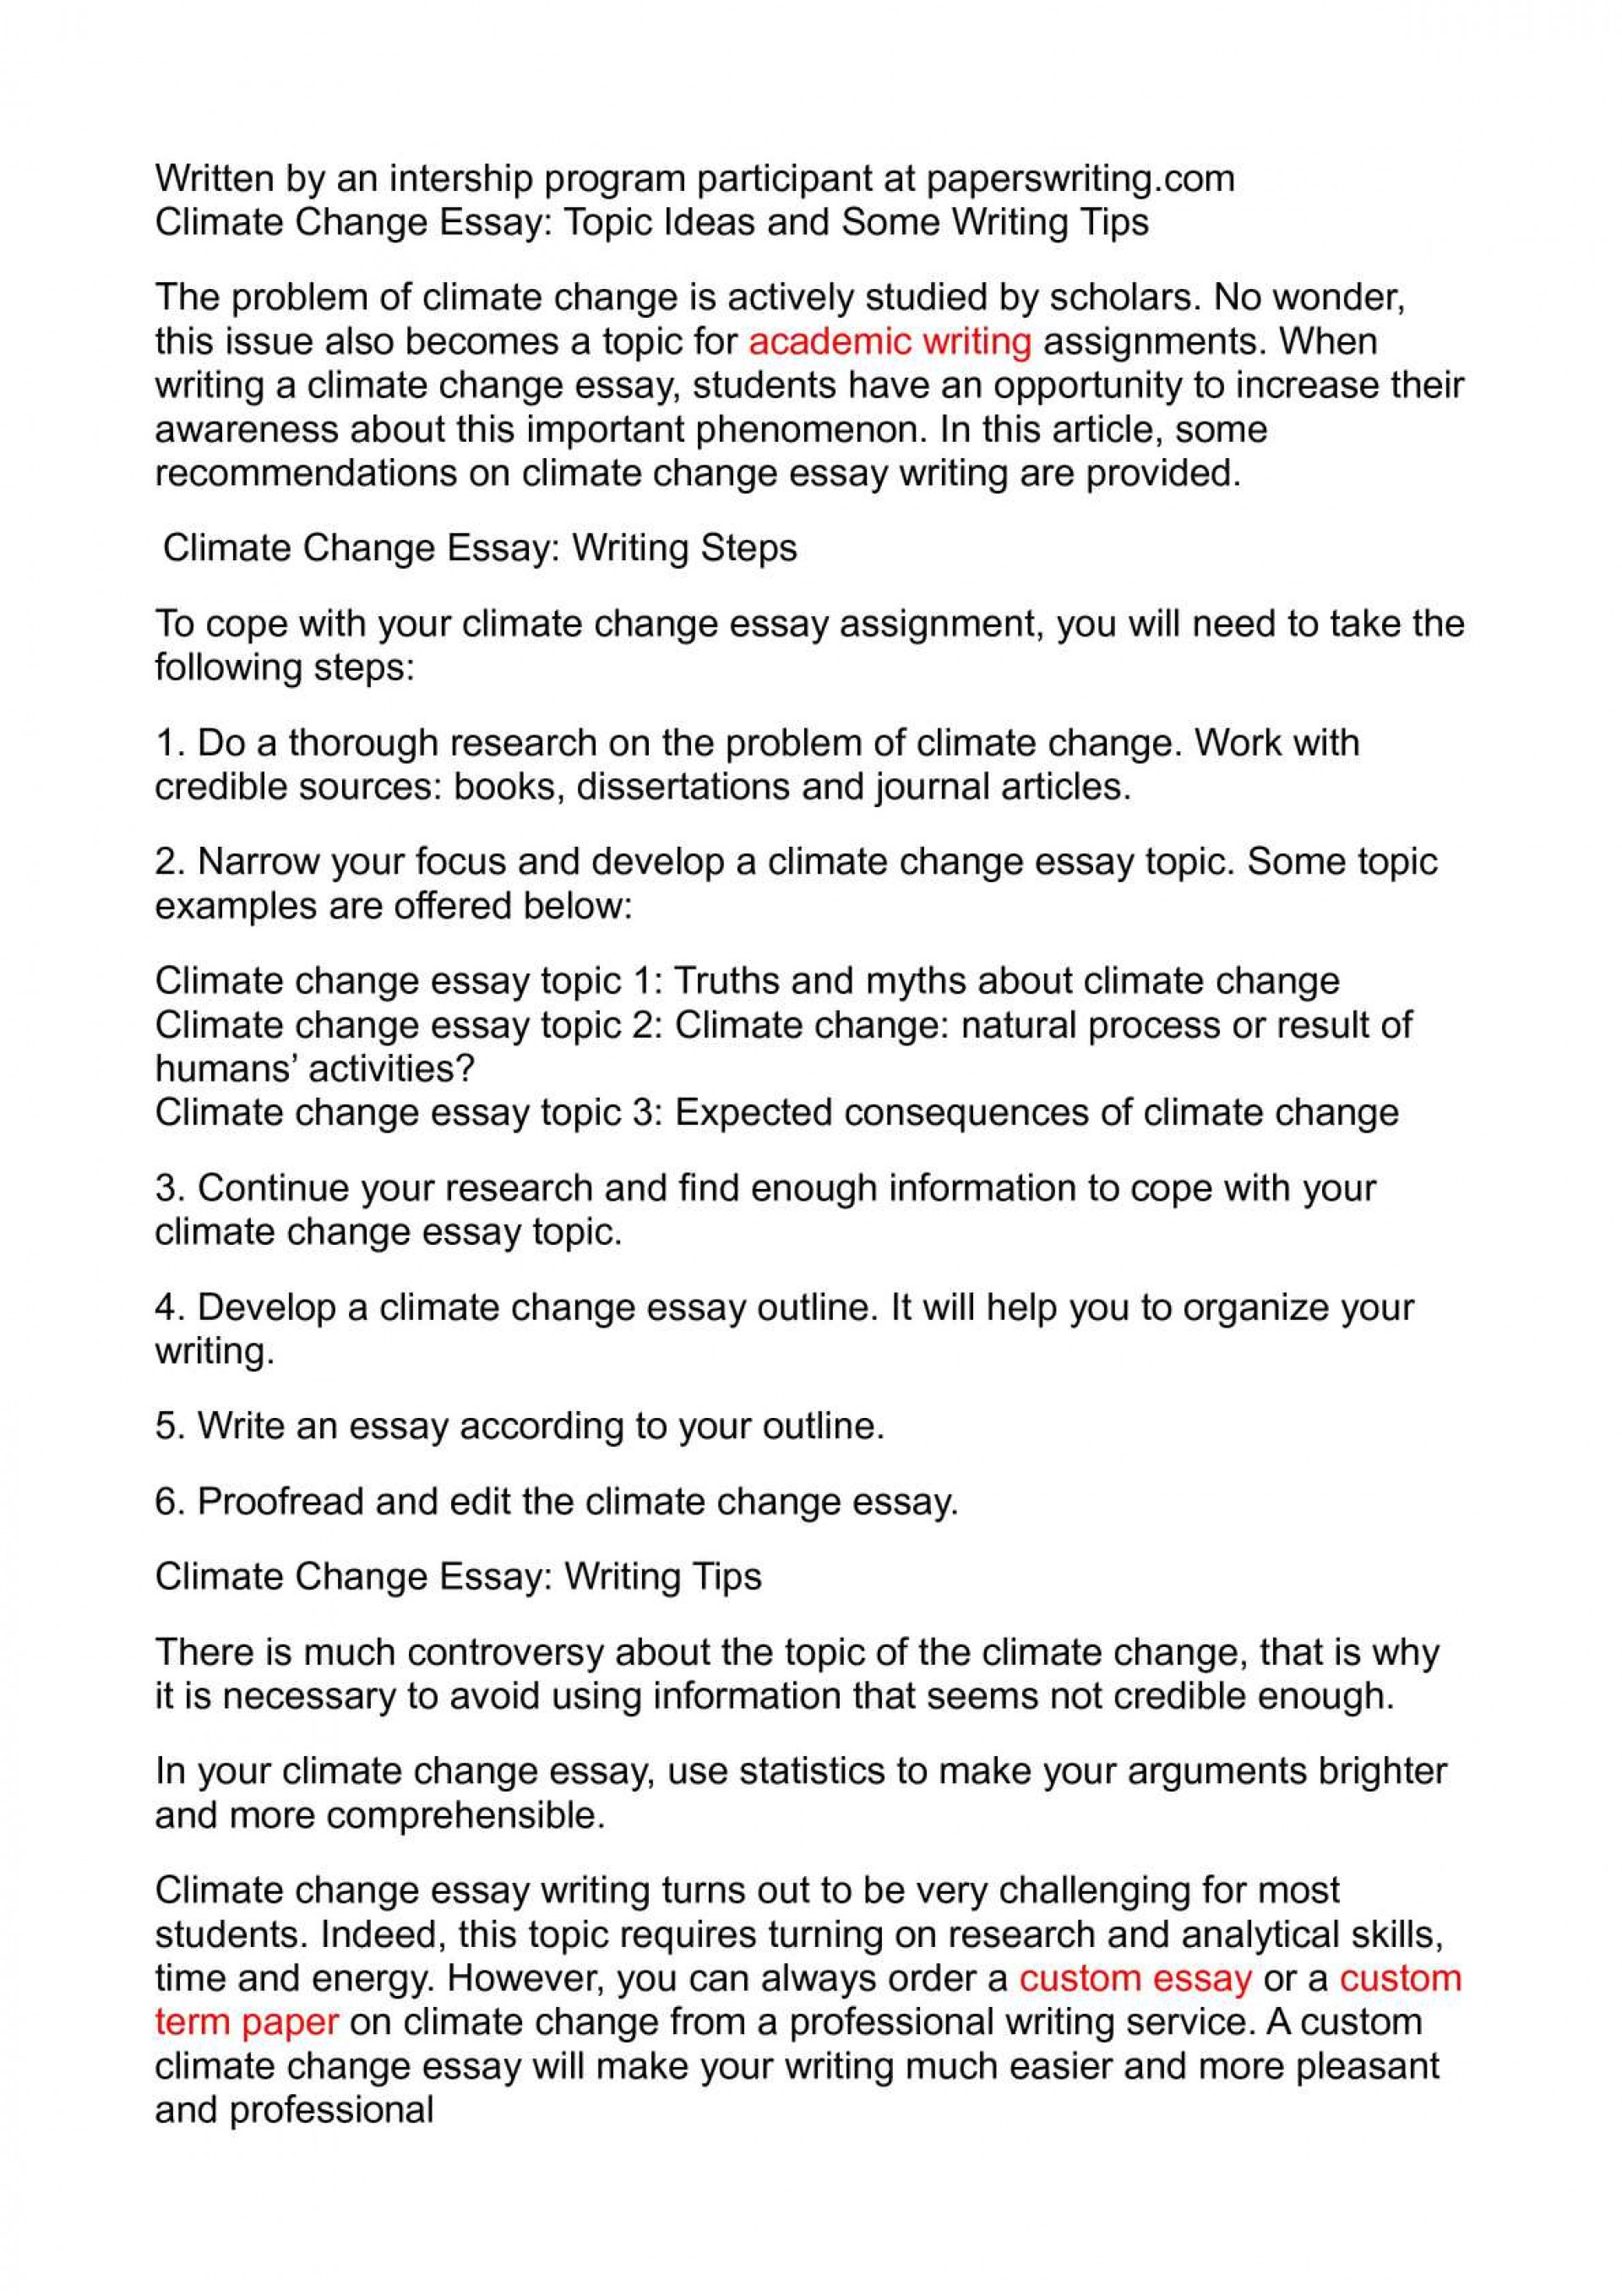 002 Climate Change Research Paper Topic Essay Topics Uncategorized Global Warming Ways To St Oracleboss Wonderful For 1920